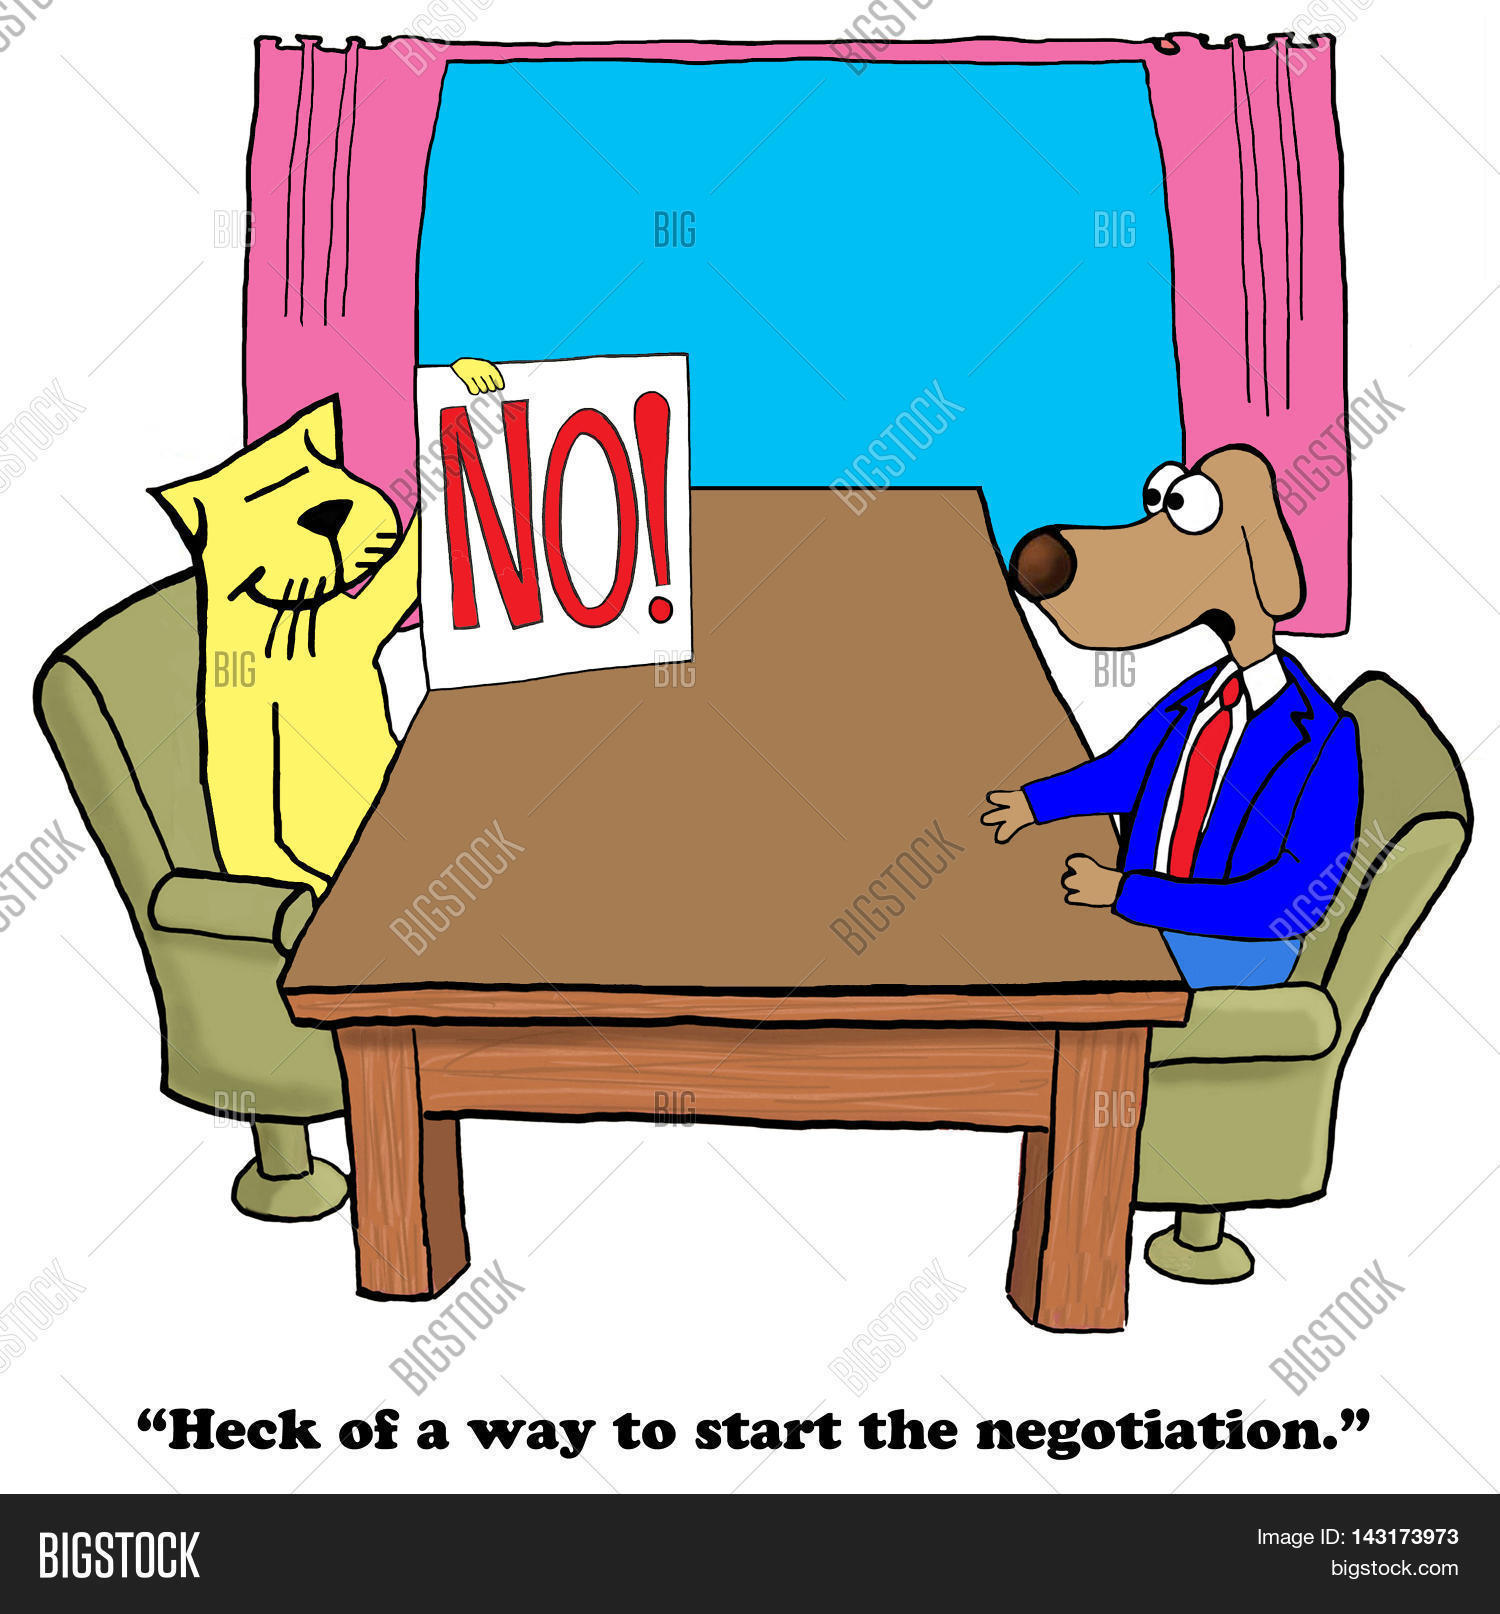 Business cartoon showing a large 'no', there is a lack of interest.